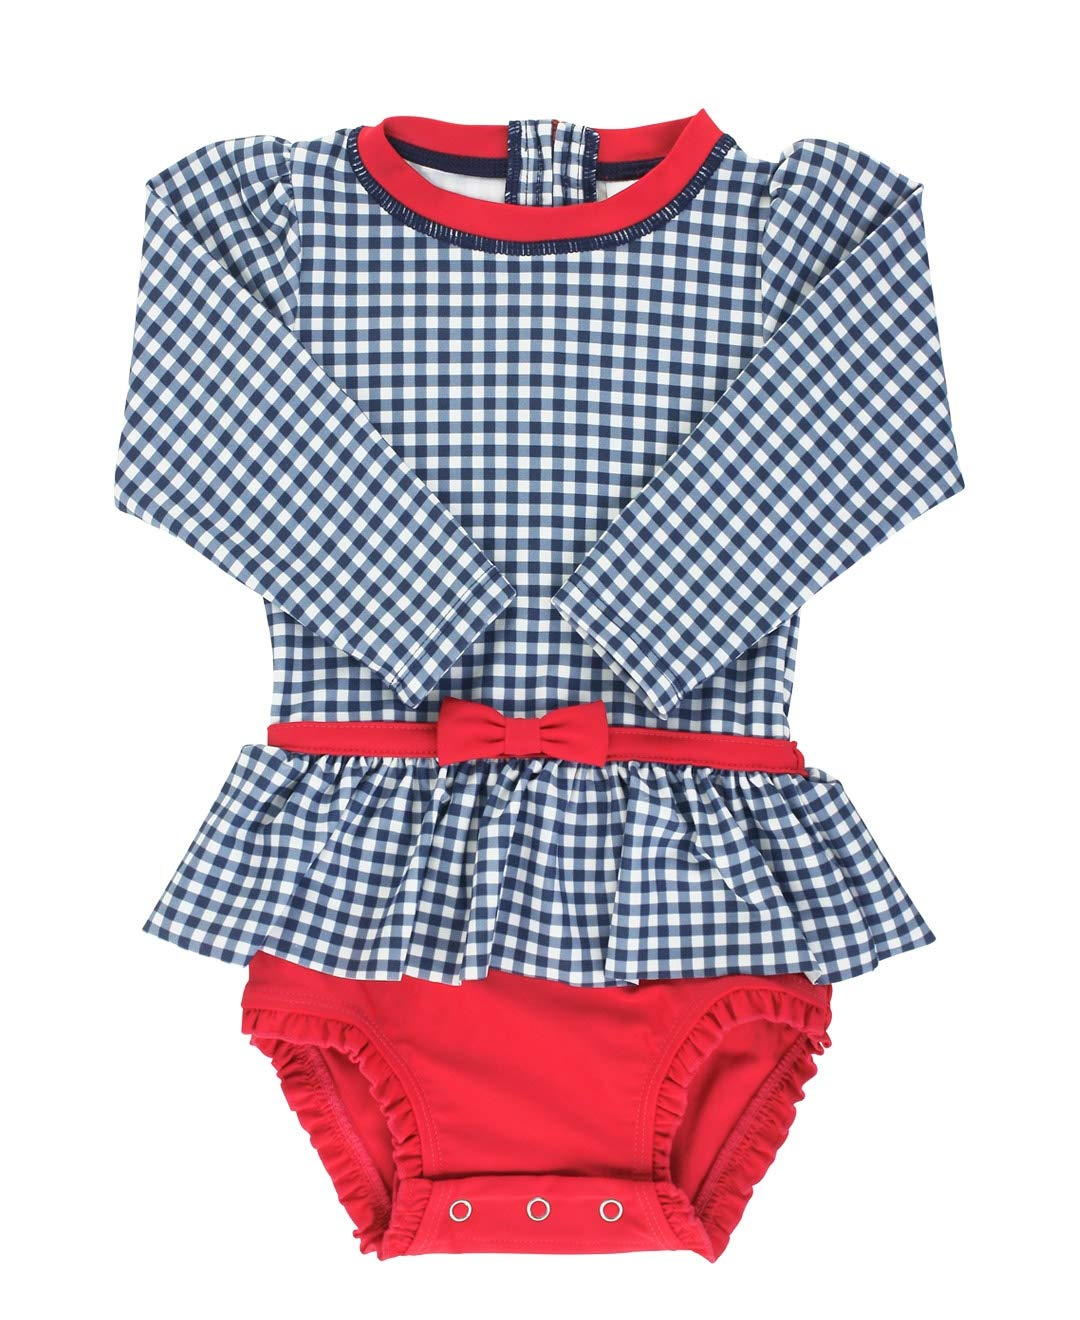 RuffleButts Baby//Toddler Girls Long Sleeve One Piece Swimsuit 6-12m Aqua Polka Dot with UPF 50 Sun Protection